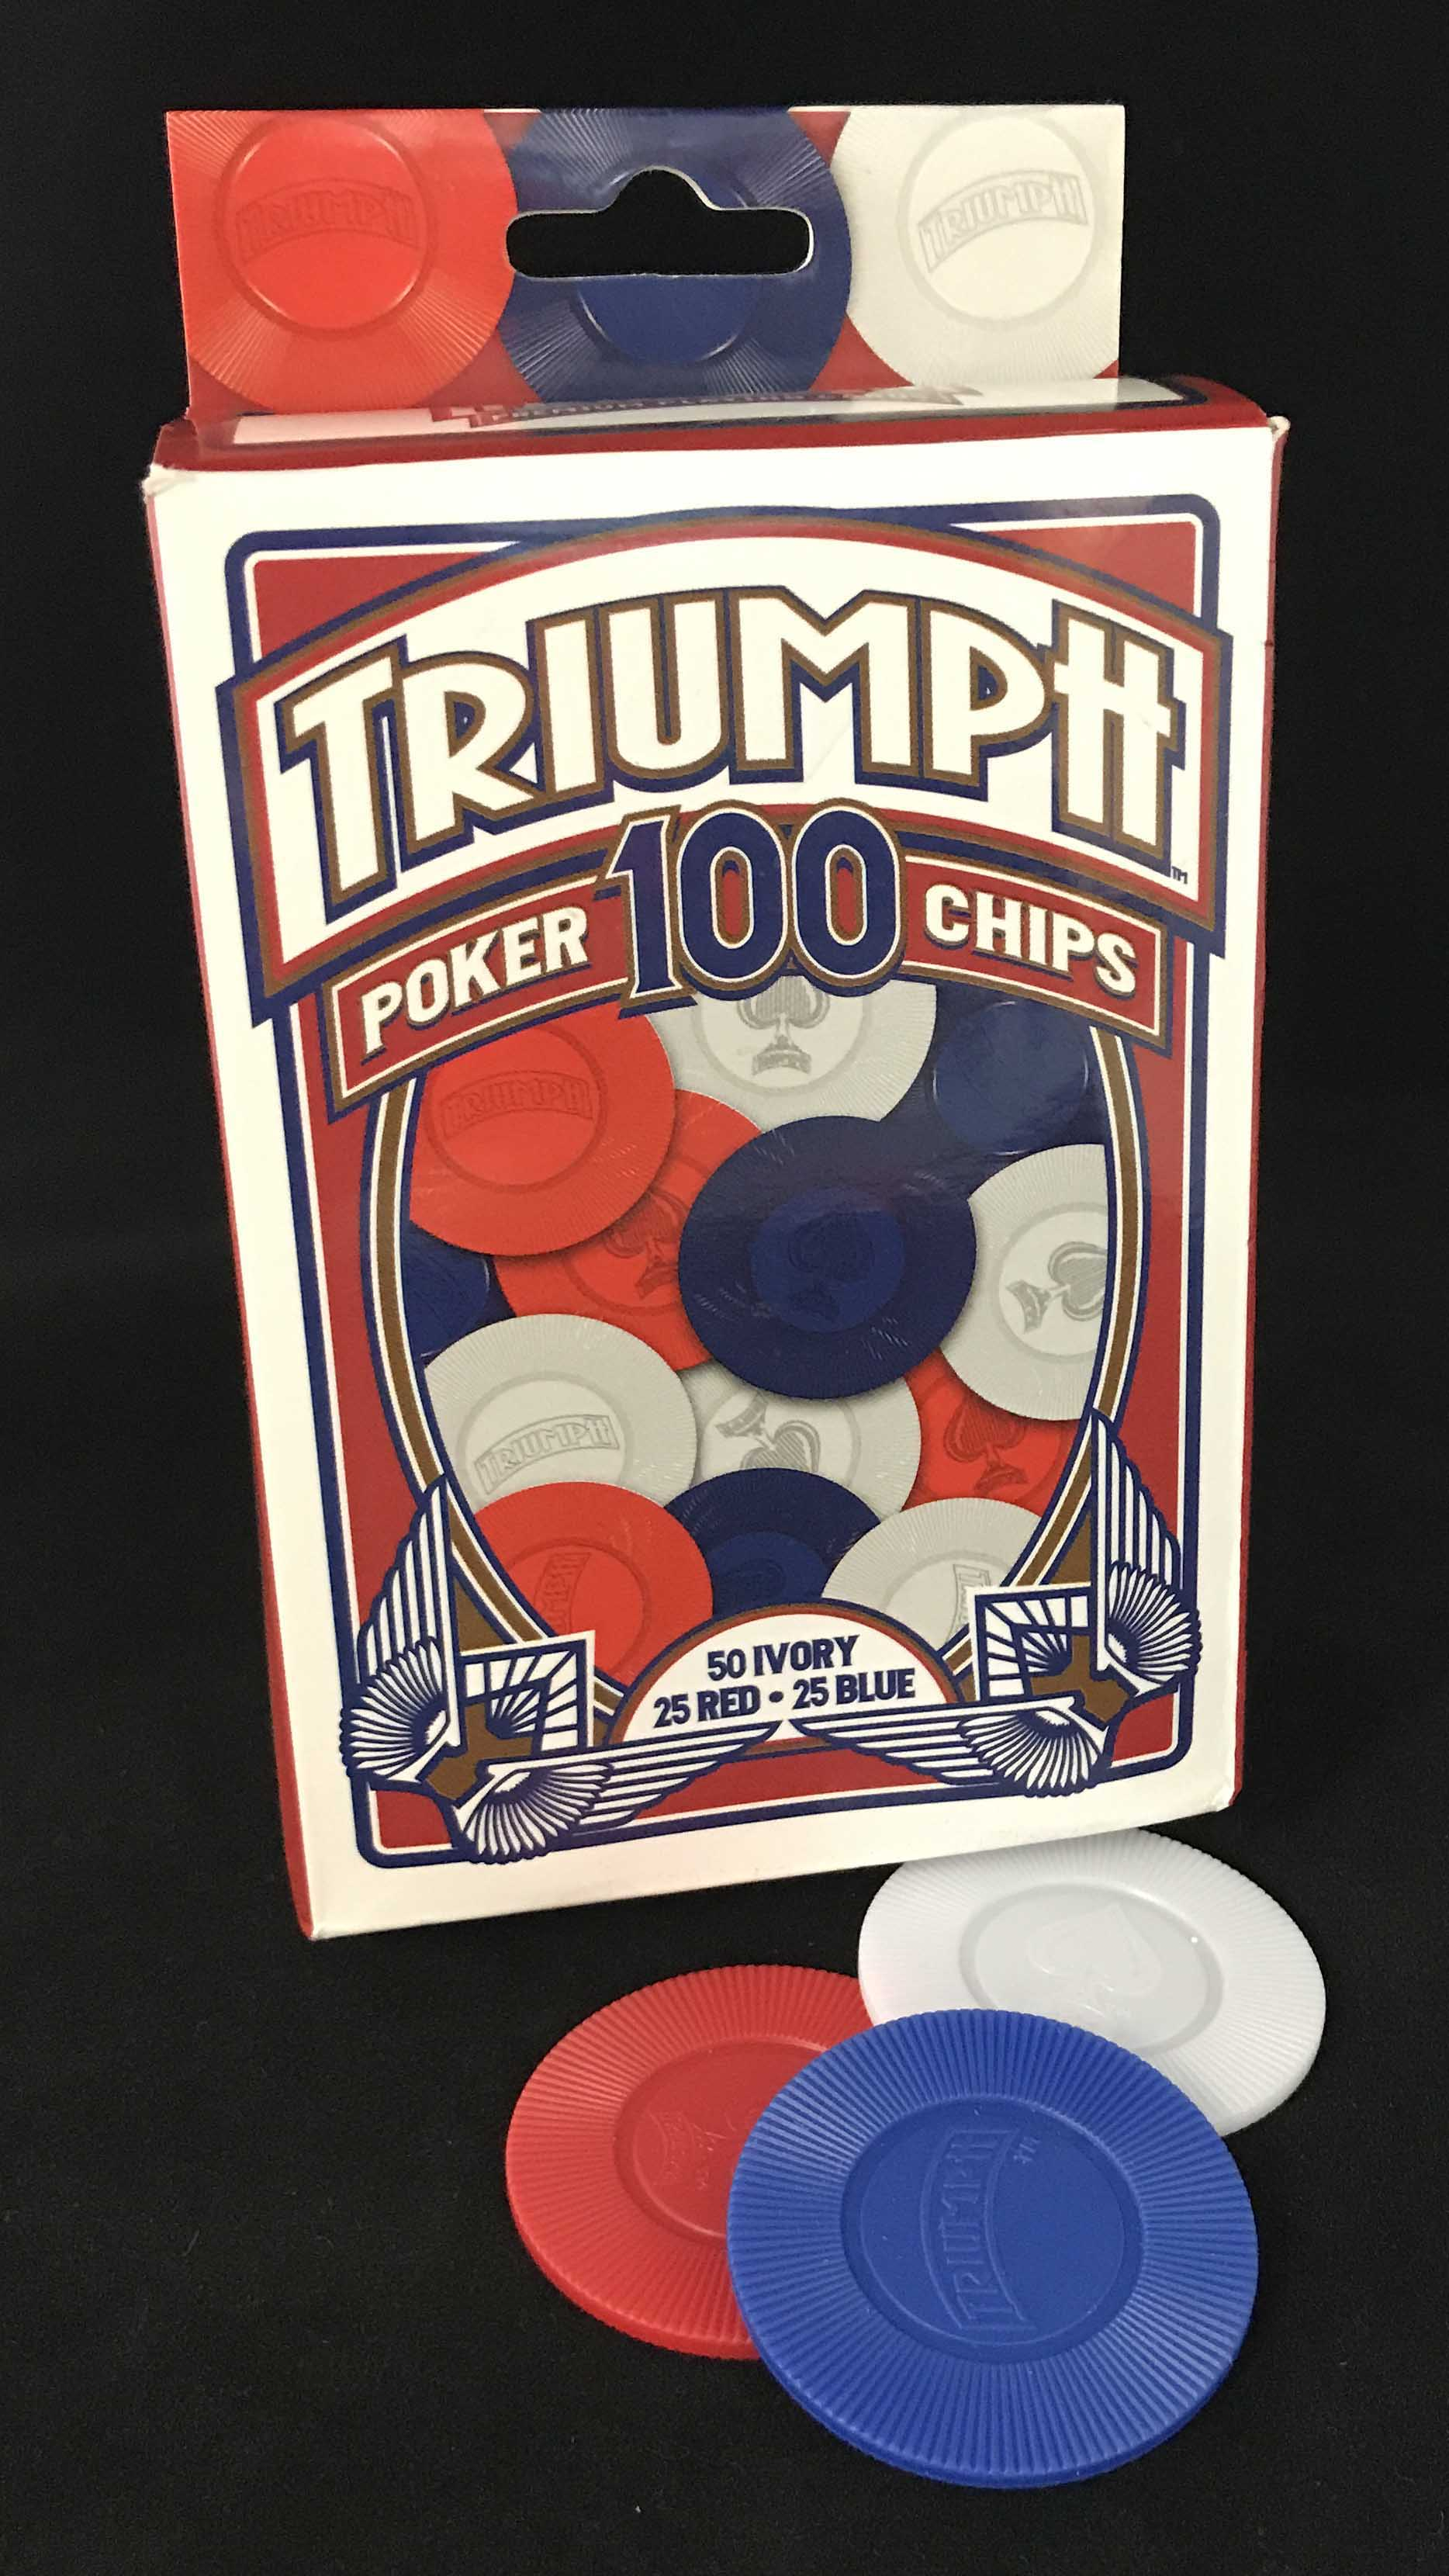 TRIUMPH POKER CHIPS by GAMING PARTNERS INTERNATIONAL USA, INC.